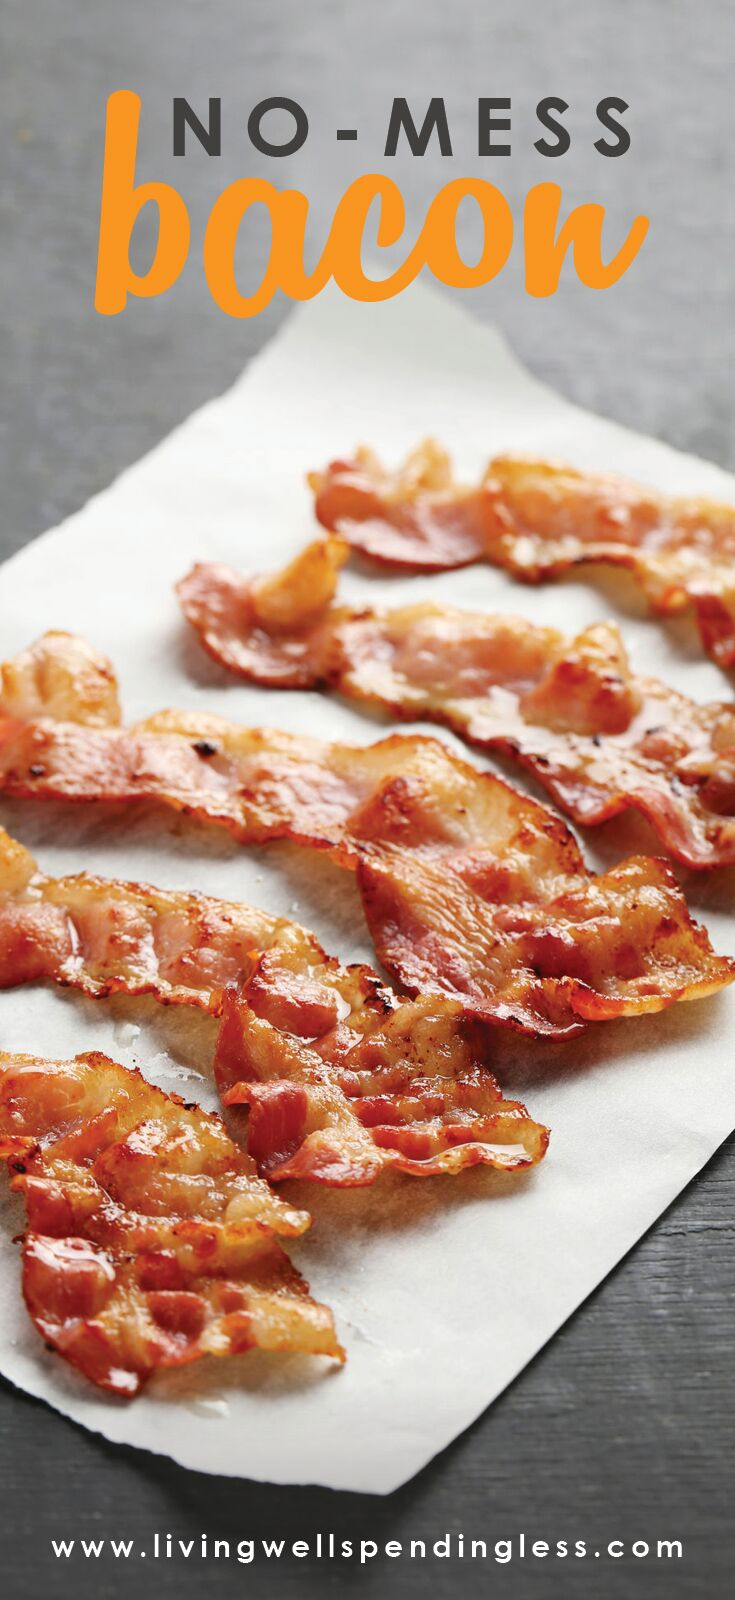 how to cook bacon in oven with parchment paper